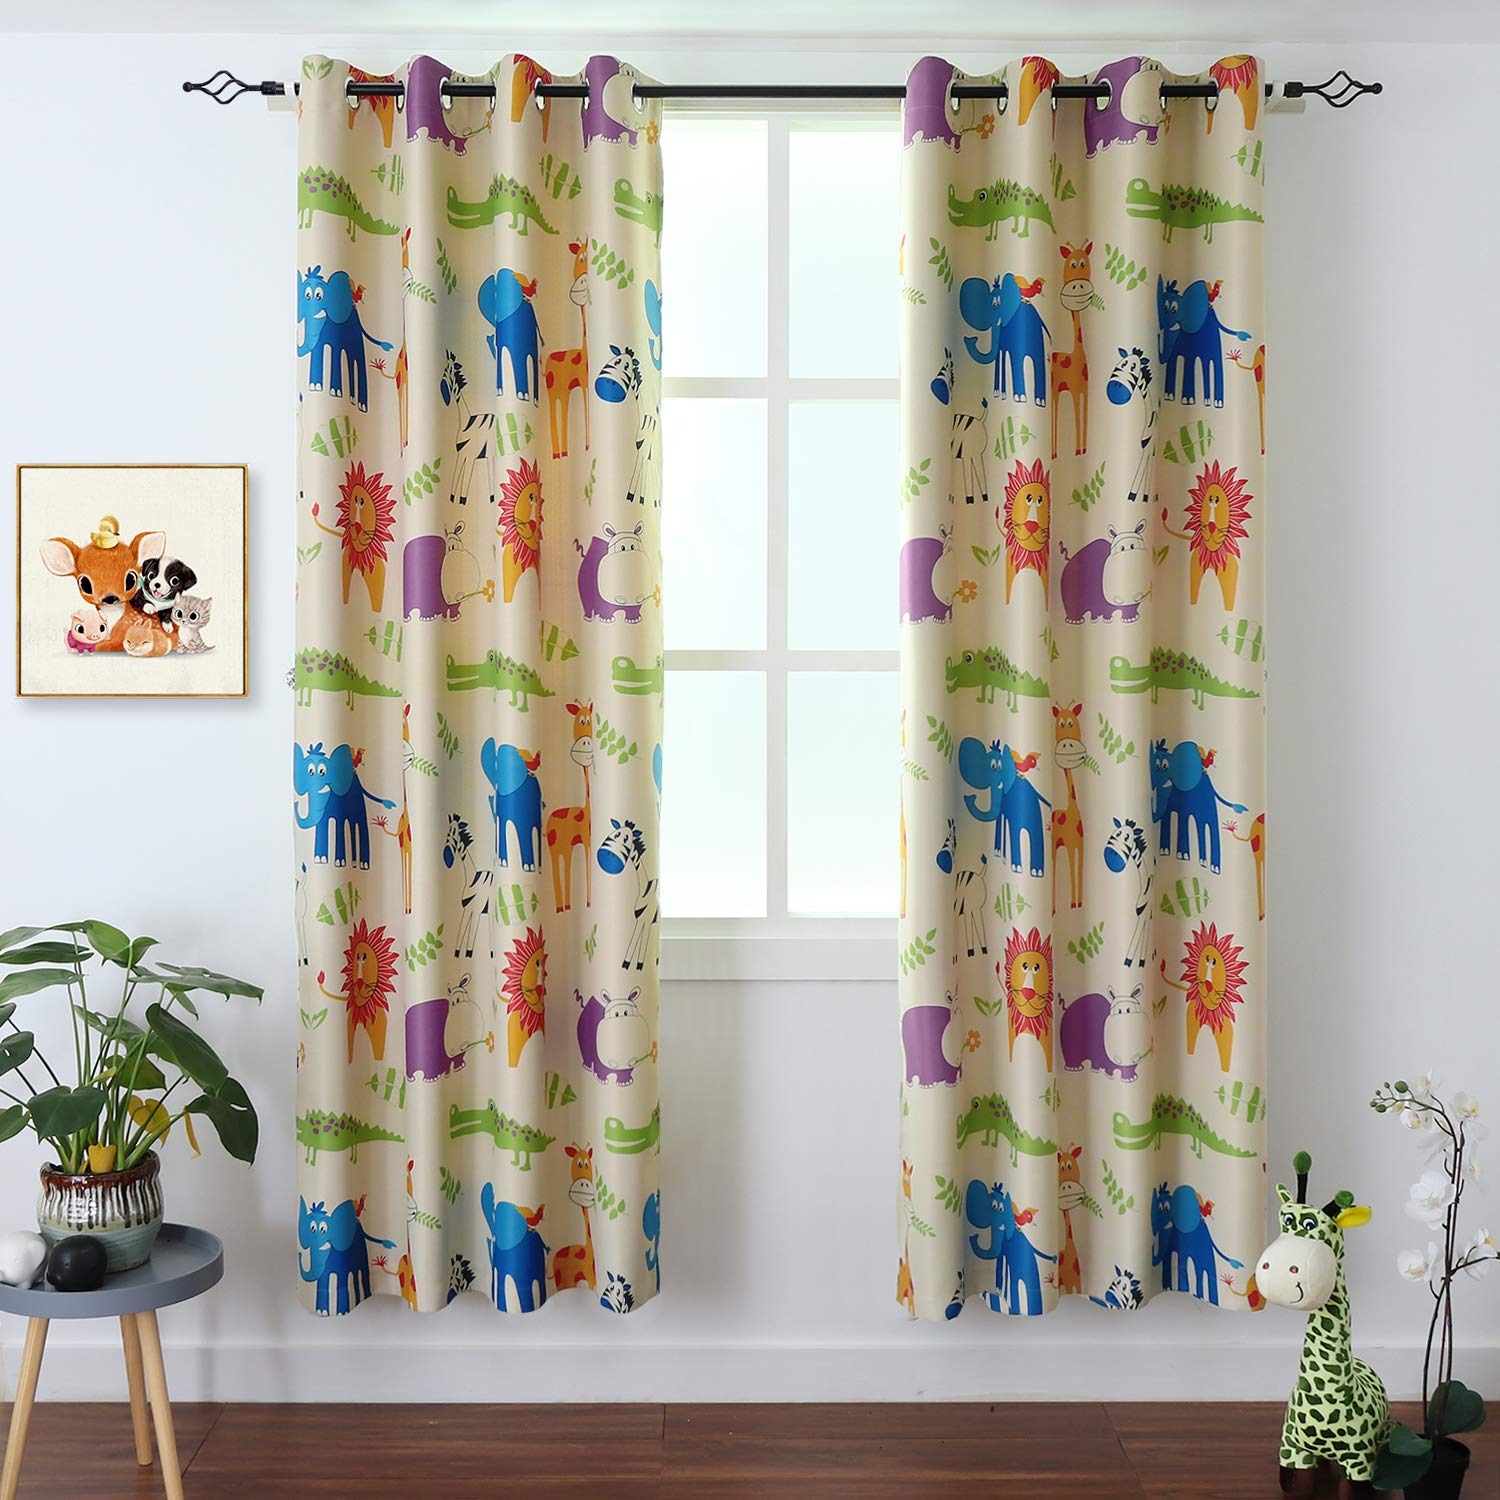 BGment Kids Blackout Curtains - Grommet Thermal Insulated Room Darkening Printed Animal Zoo